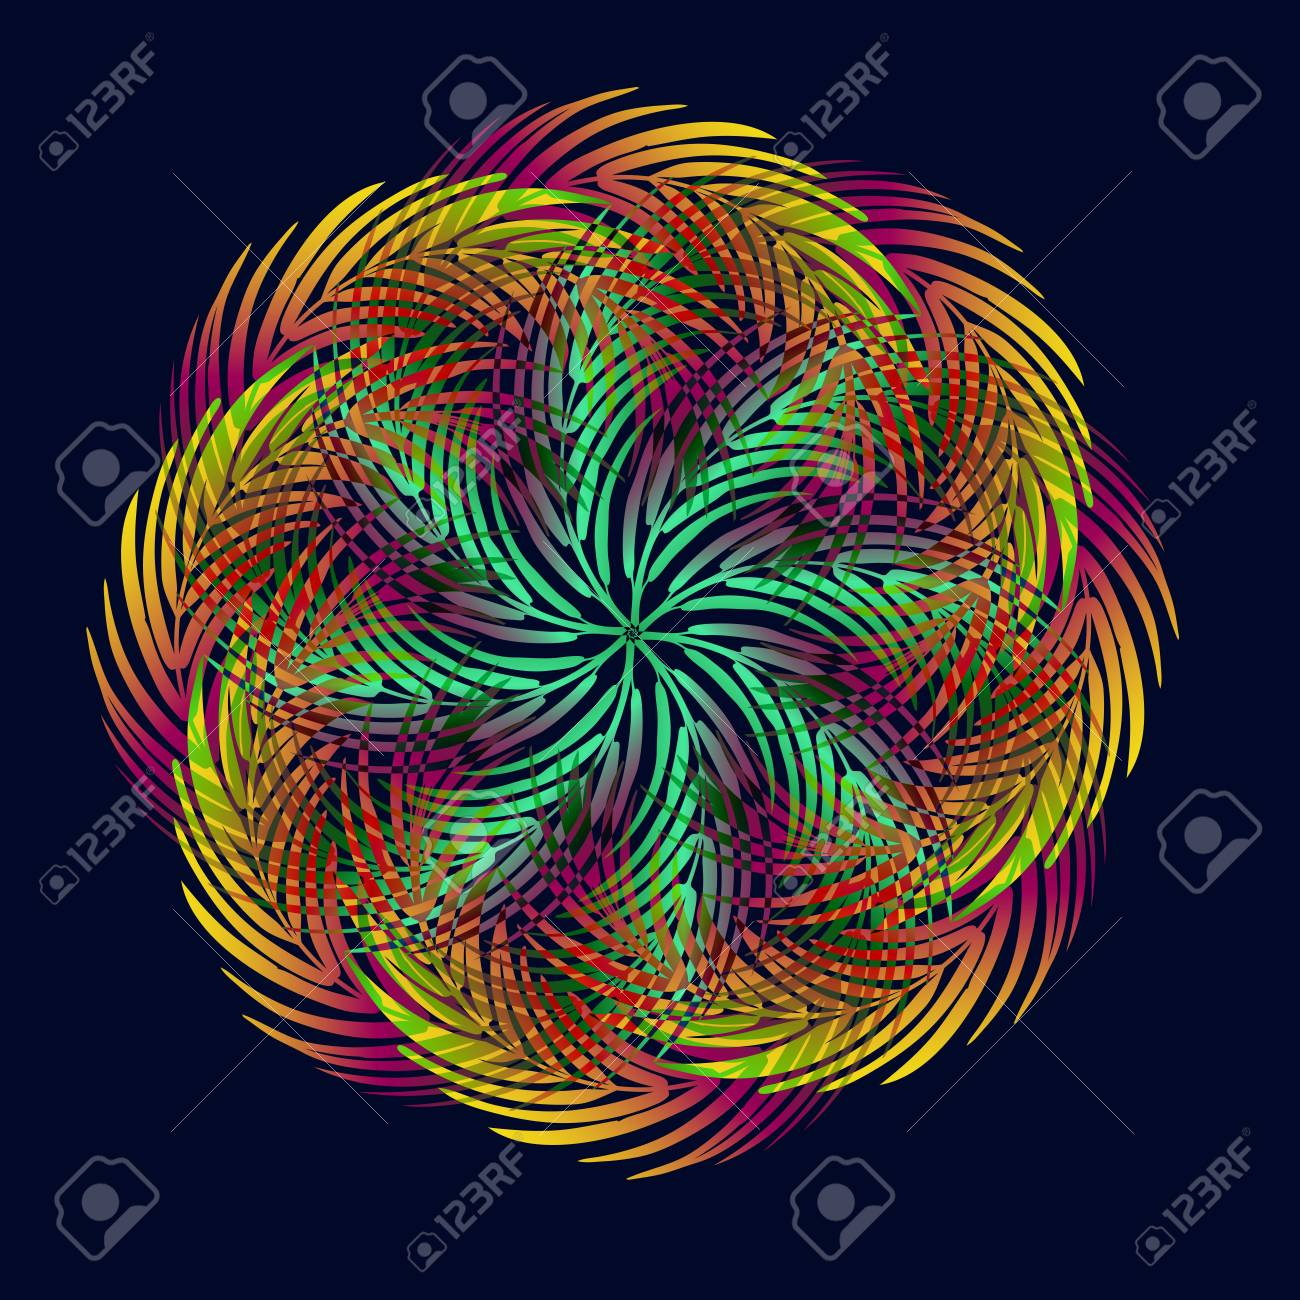 Stylized Mandala From Leaves Of Palm Trees In The Colors Of The ...